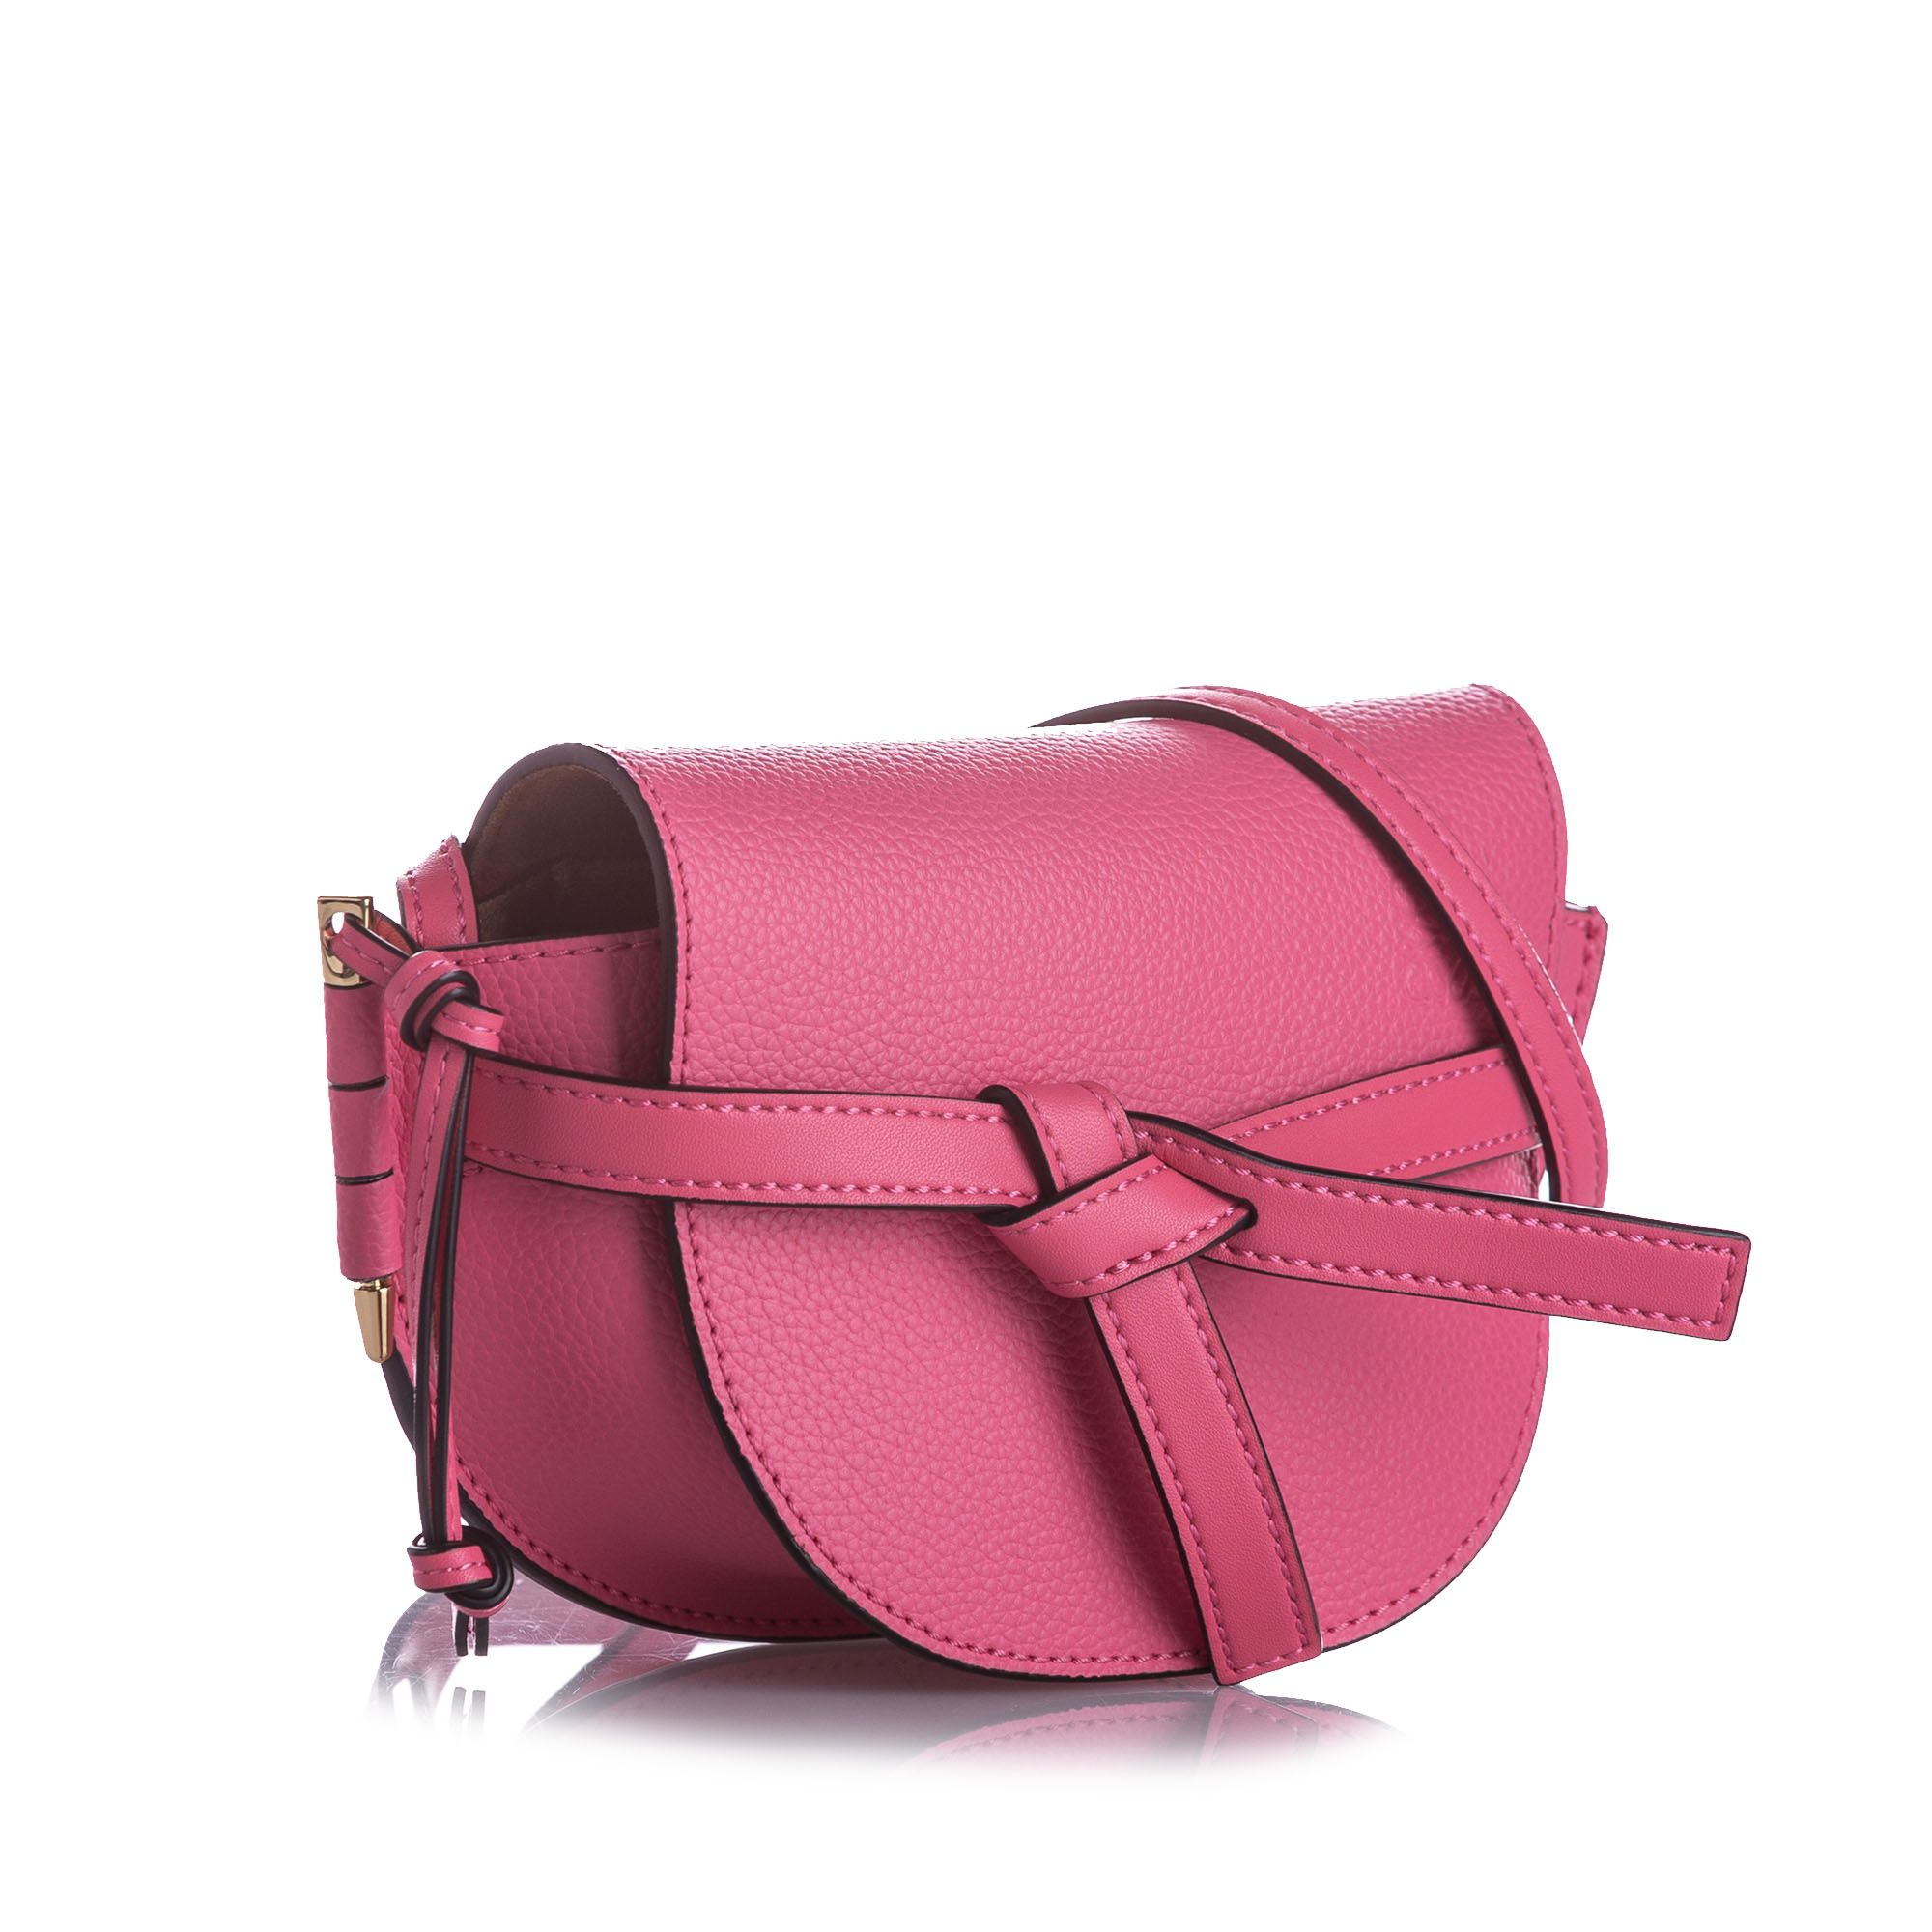 Vintage Loewe Mini Gate Leather Crossbody Bag Pink